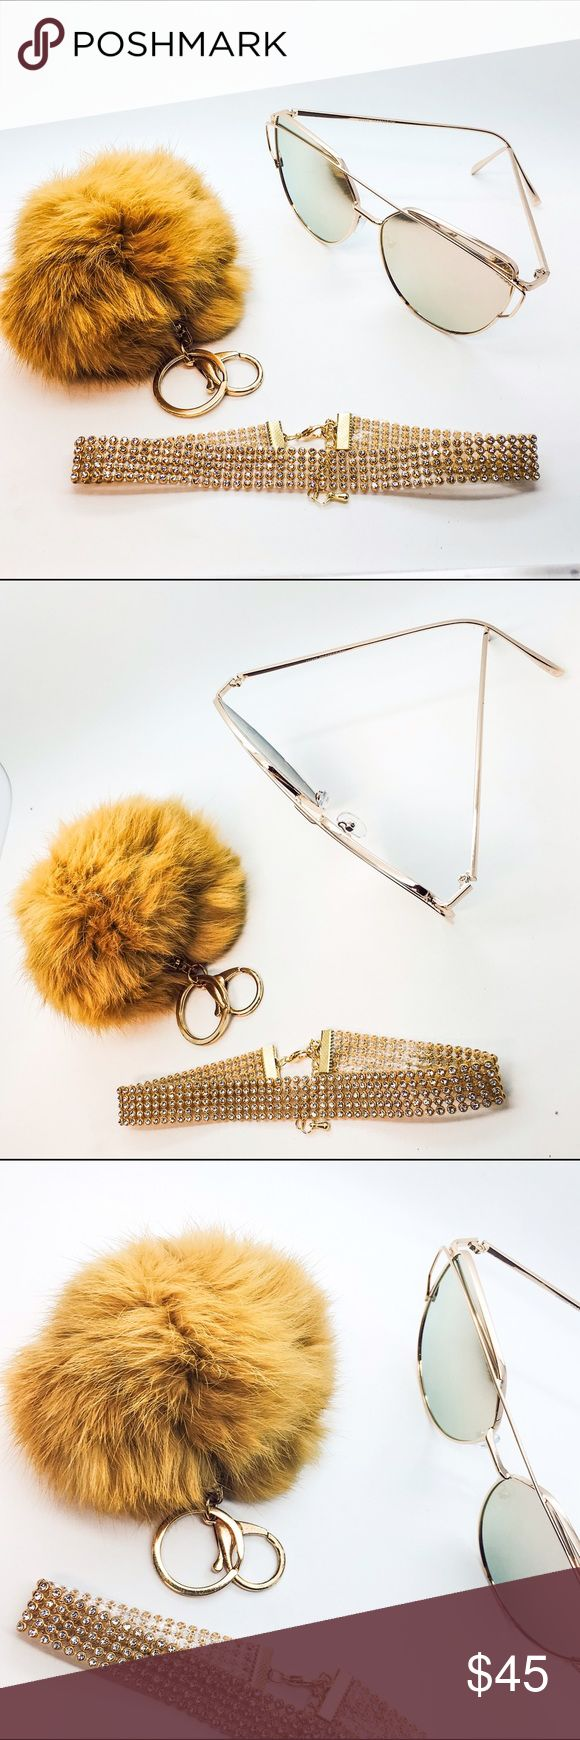 "I "" Dior "" You Bundle - Tan Fur Fluffy Plush Pom Pom Ball Keychain                                         - Rose Gold / Pink Miami Cat Eye Aviator Mirrored Celebrity Sunglasses                                                                - Nightglam Jeweled Studded Choker Collar Necklace                                                                   TRENDING NOW!!  LA Trends! glLAam Accessories"